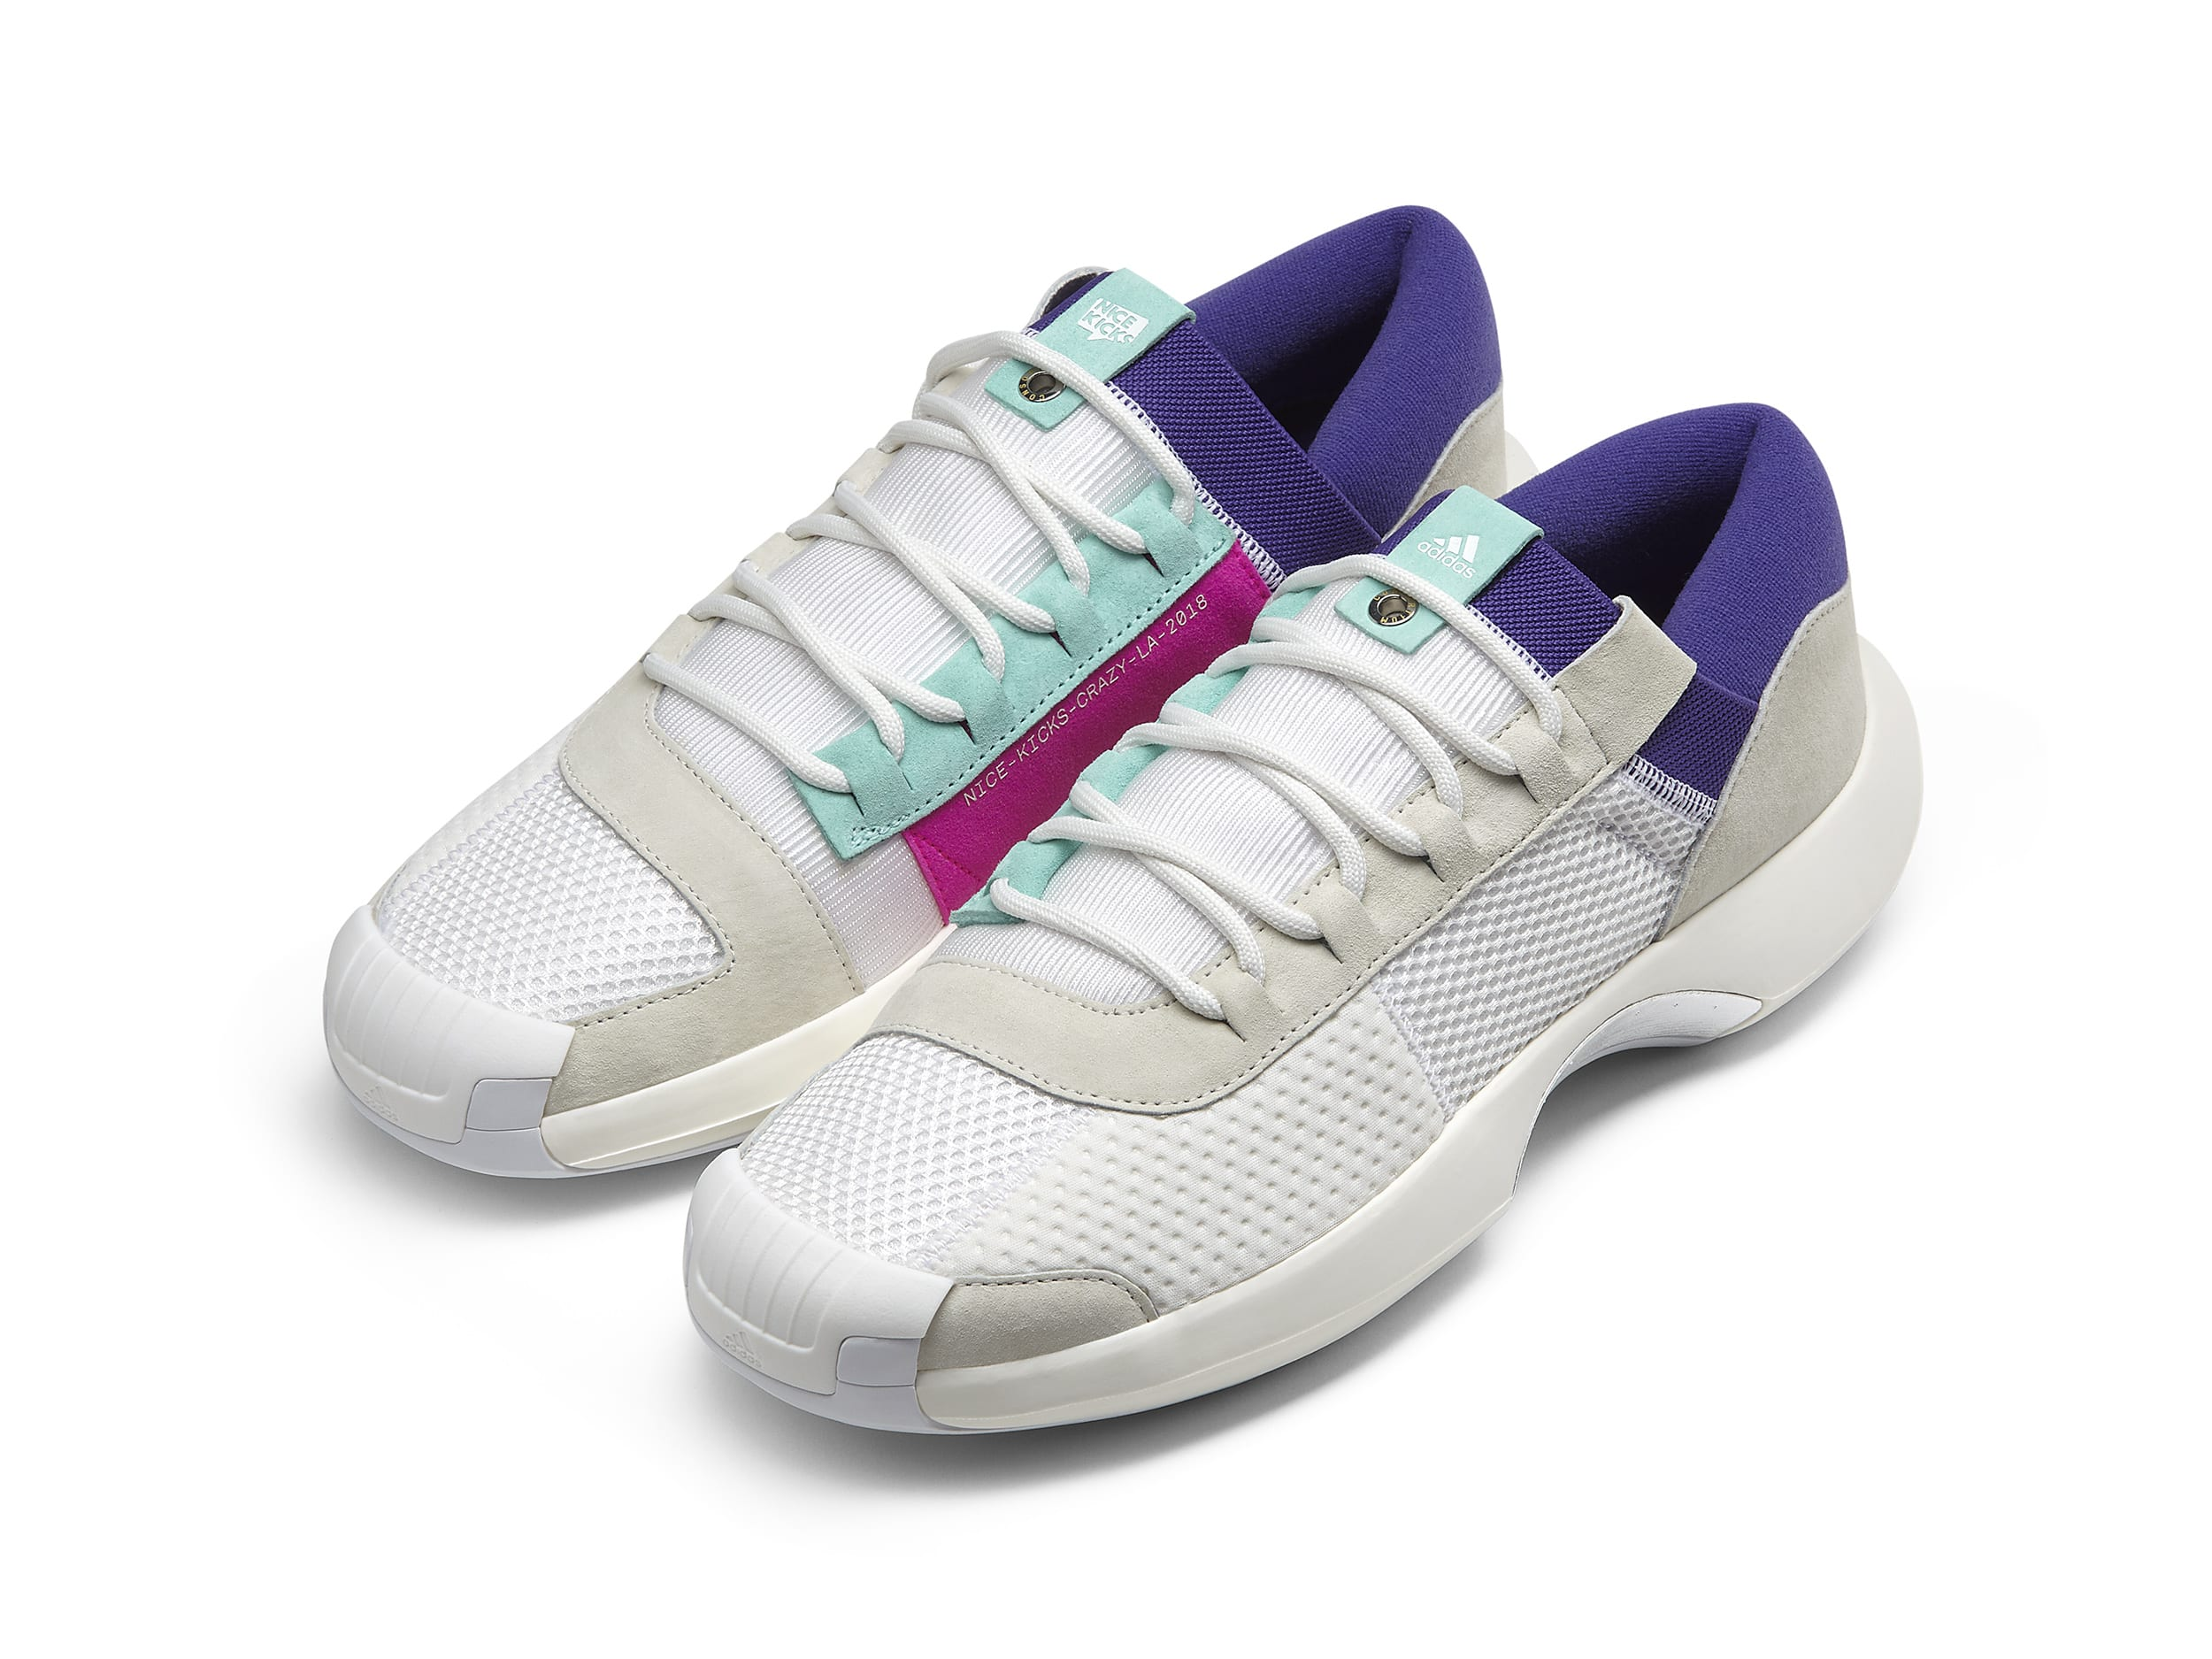 finest selection e6285 22c49 Crazy 1 ADV Nice Kicks Mesh upper with suede overlays. Color White   Energy Aqua  Energy Ink  Shock Pink